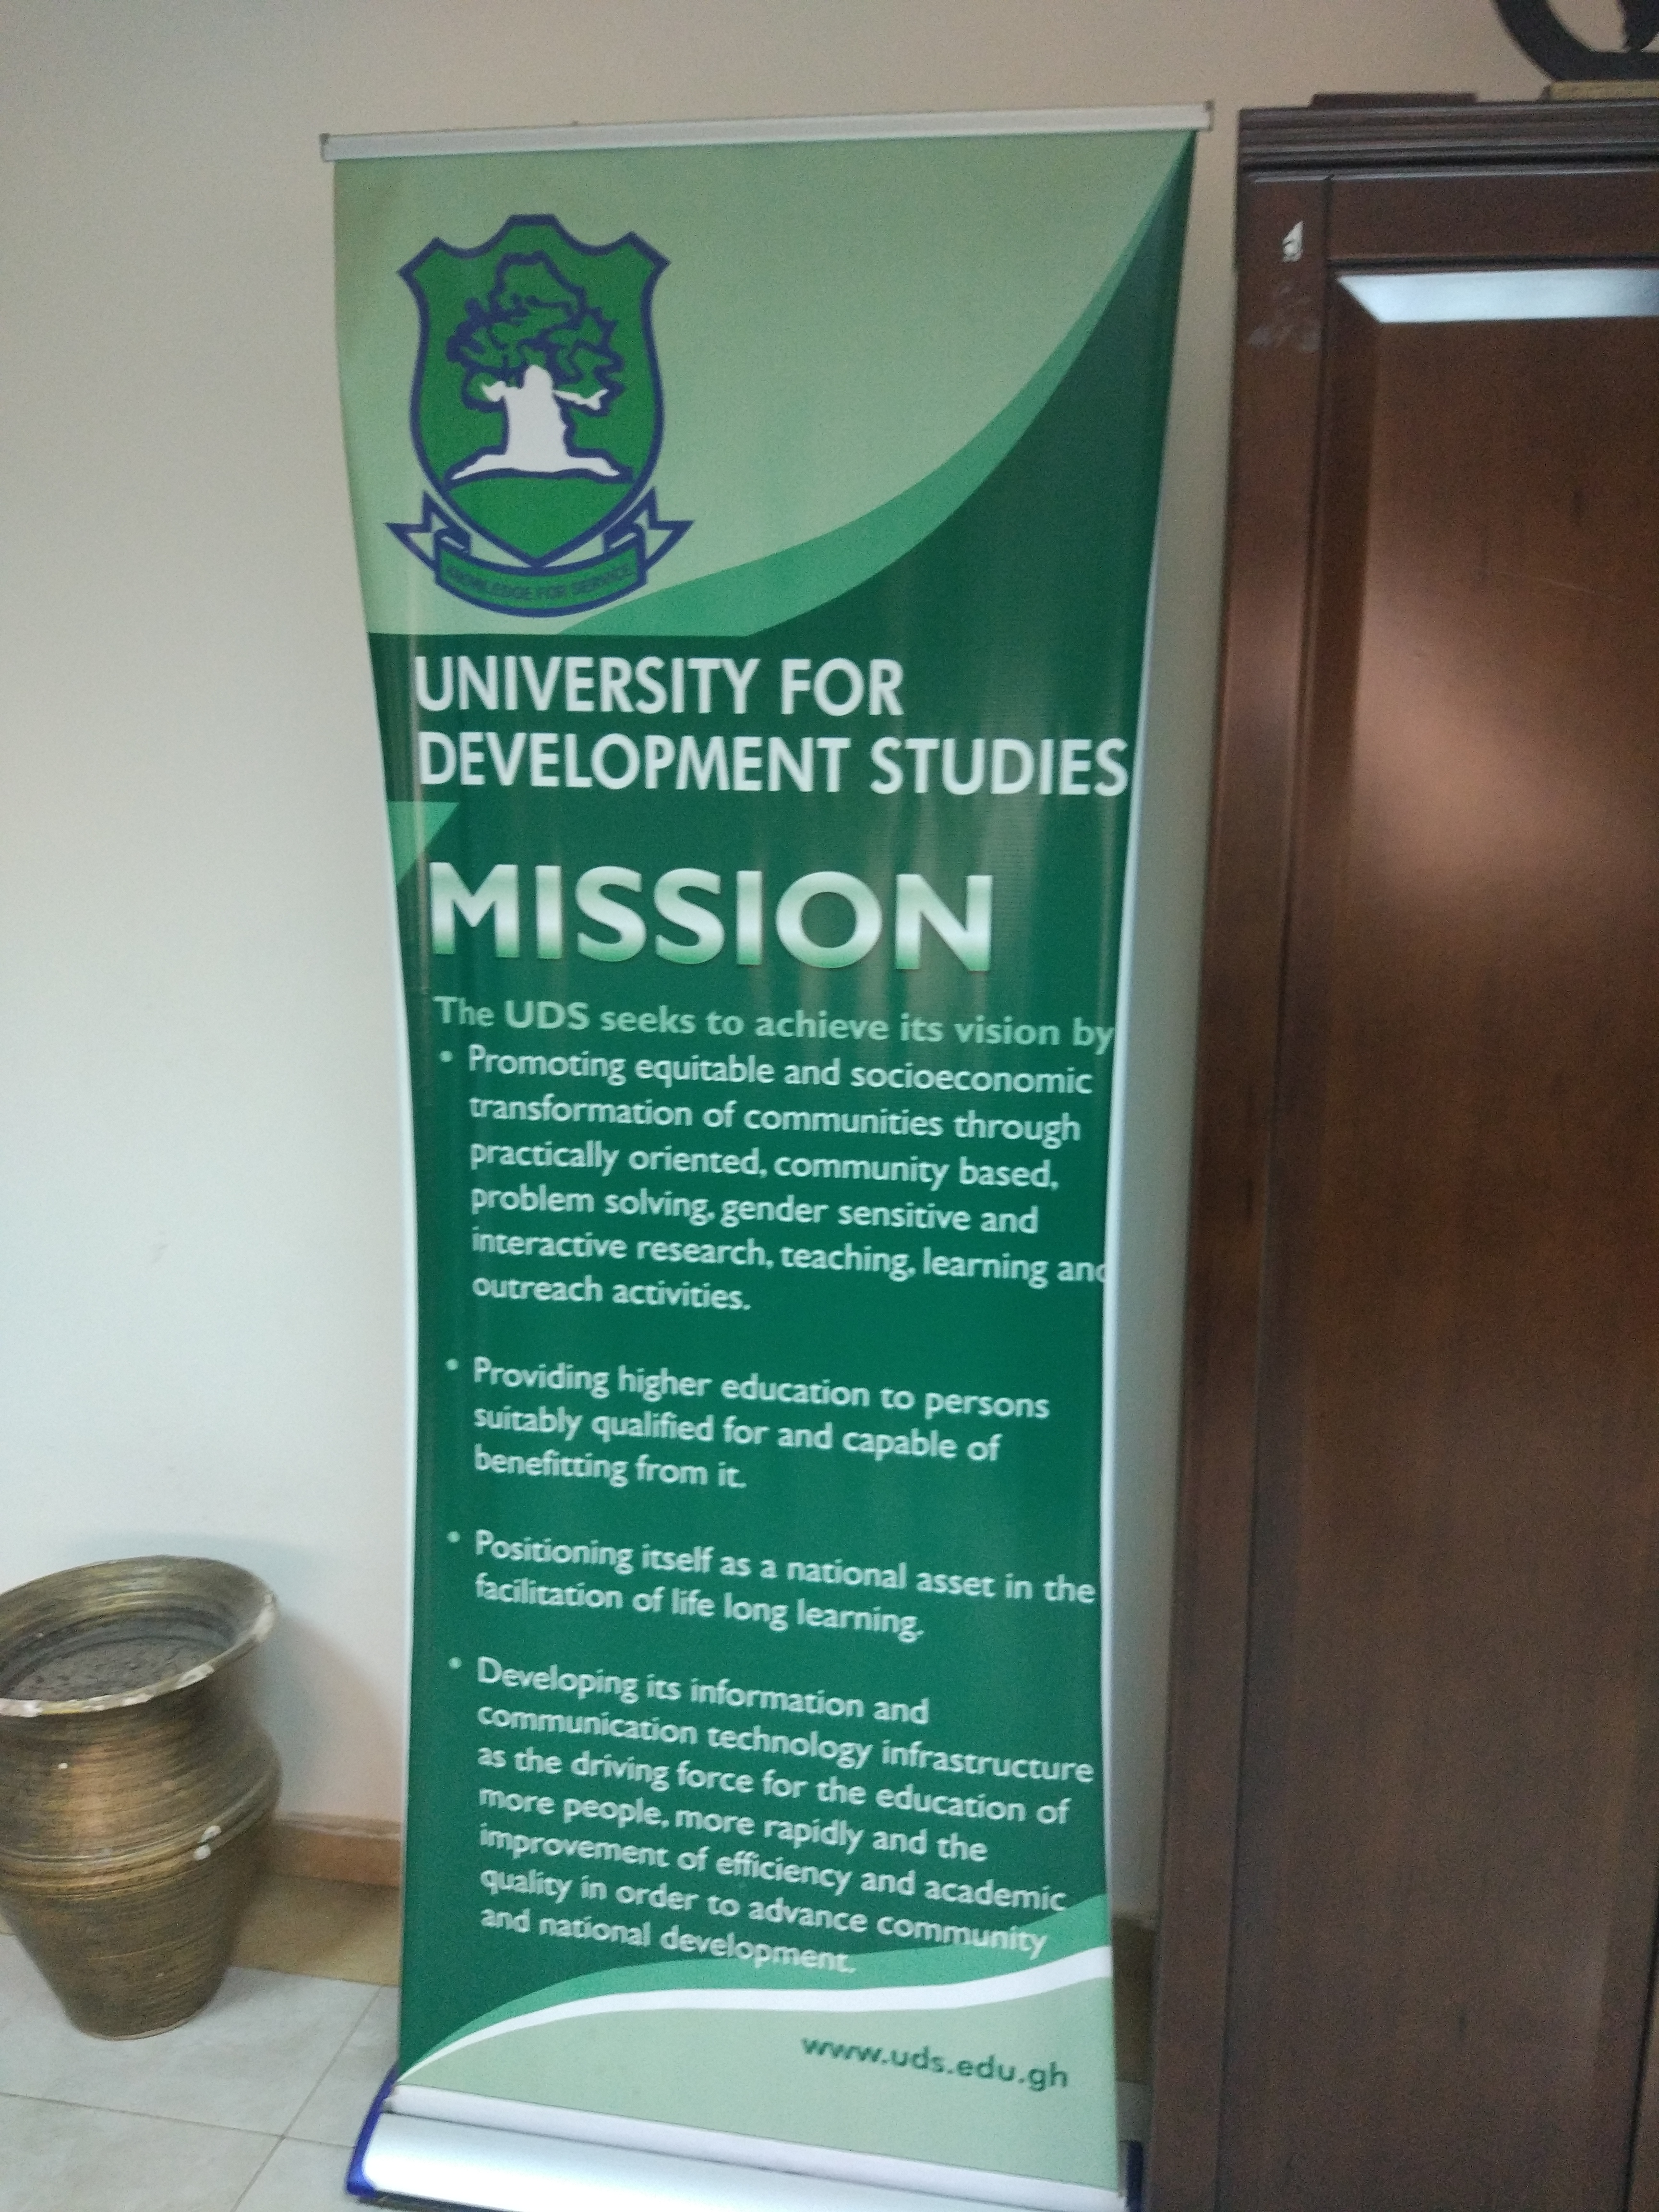 The UDS mission statement